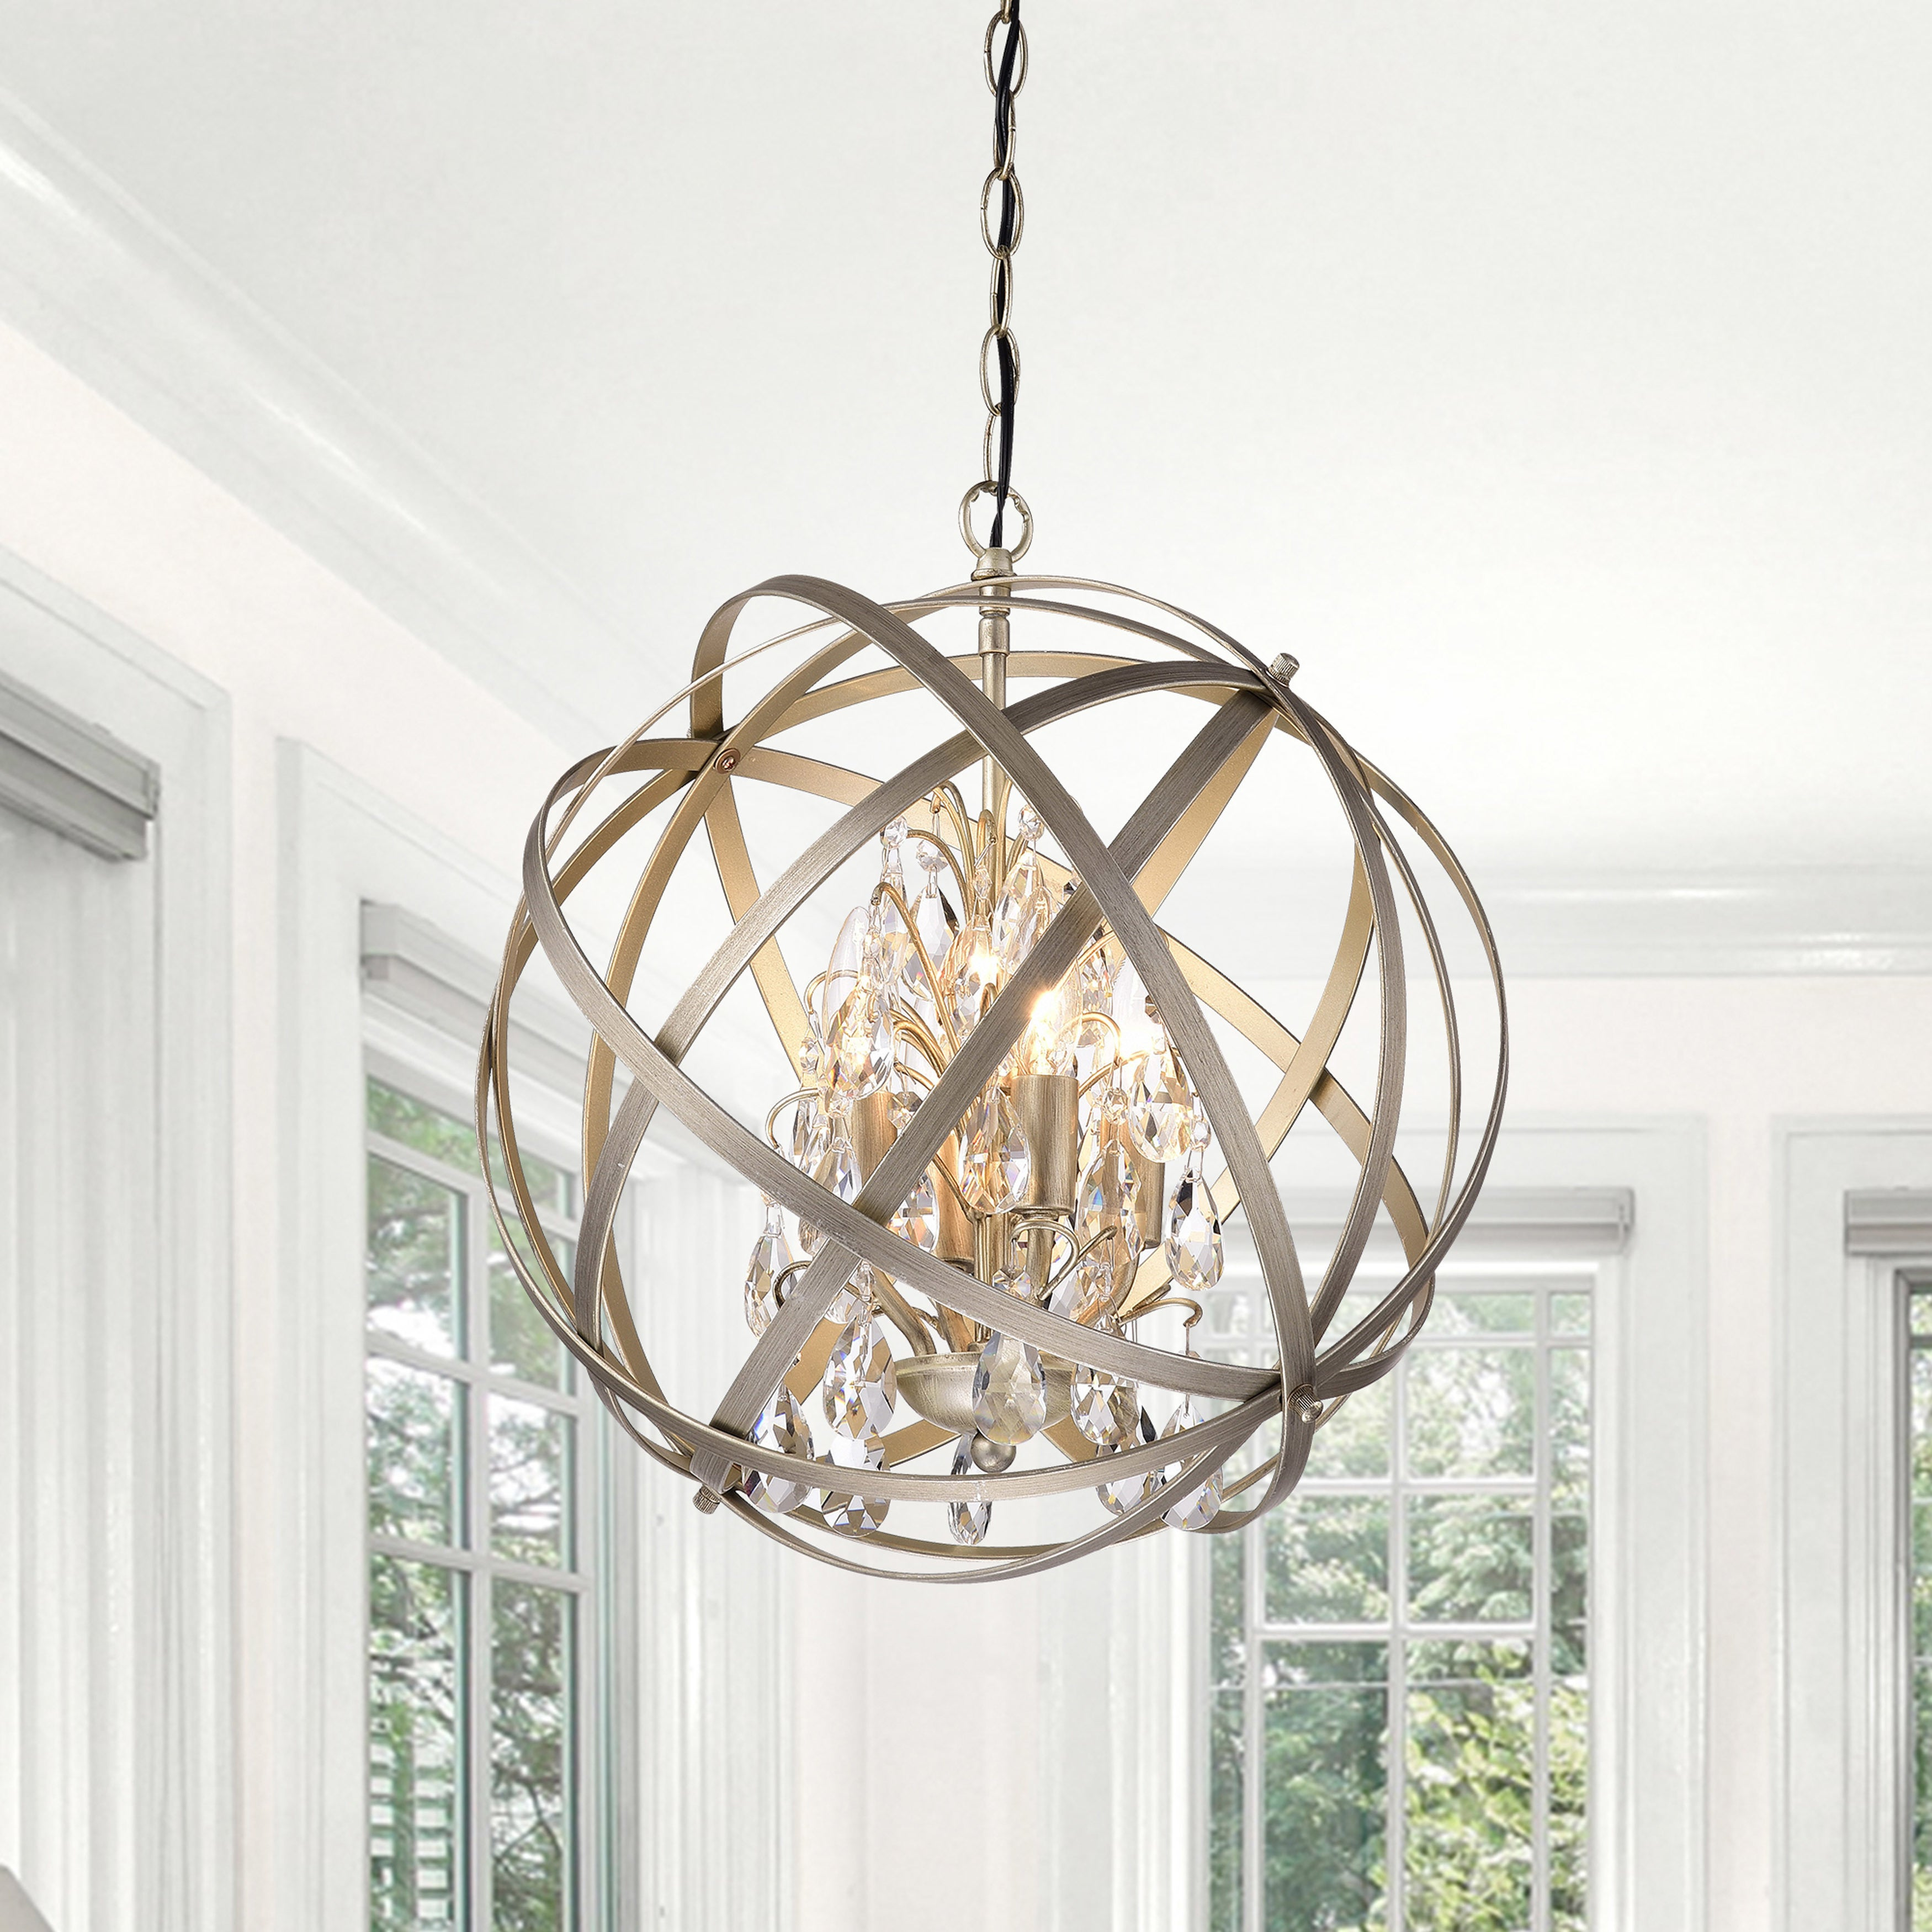 Shop Benita Antique Copper 4 Light Metal Globe Crystal Chandelier 15 Hour Lamp Fader Sunset Free Shipping Today 16002994